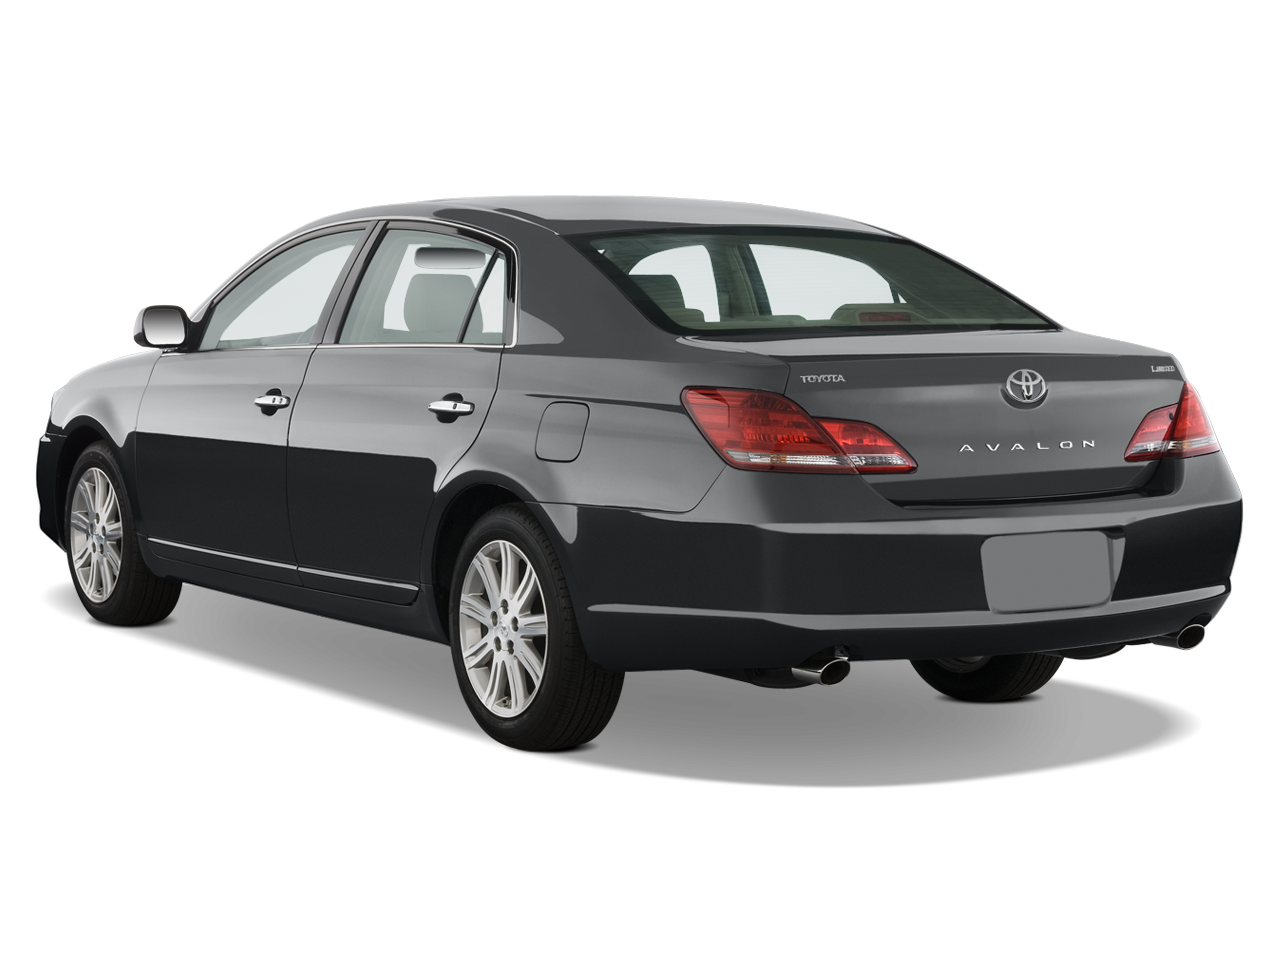 2009 Toyota Avalon Touring photo - 9